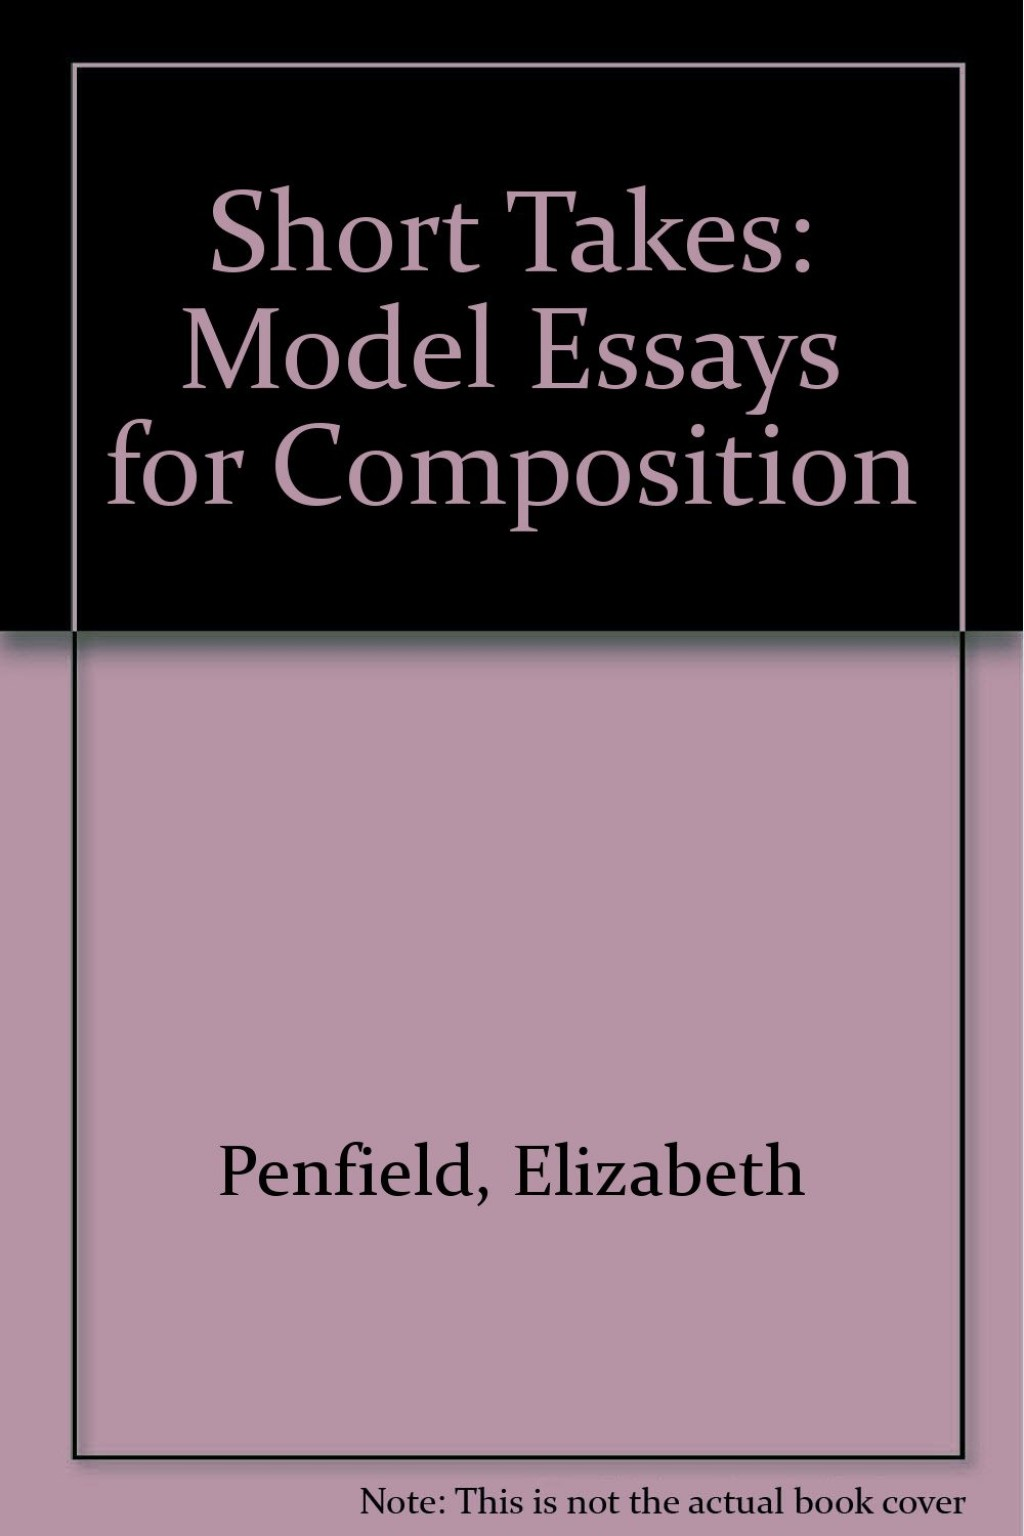 015 Essay Example 61cenqqb8bl Models For Writers Short Essays Singular Composition 12th Edition Pdf 13th Large